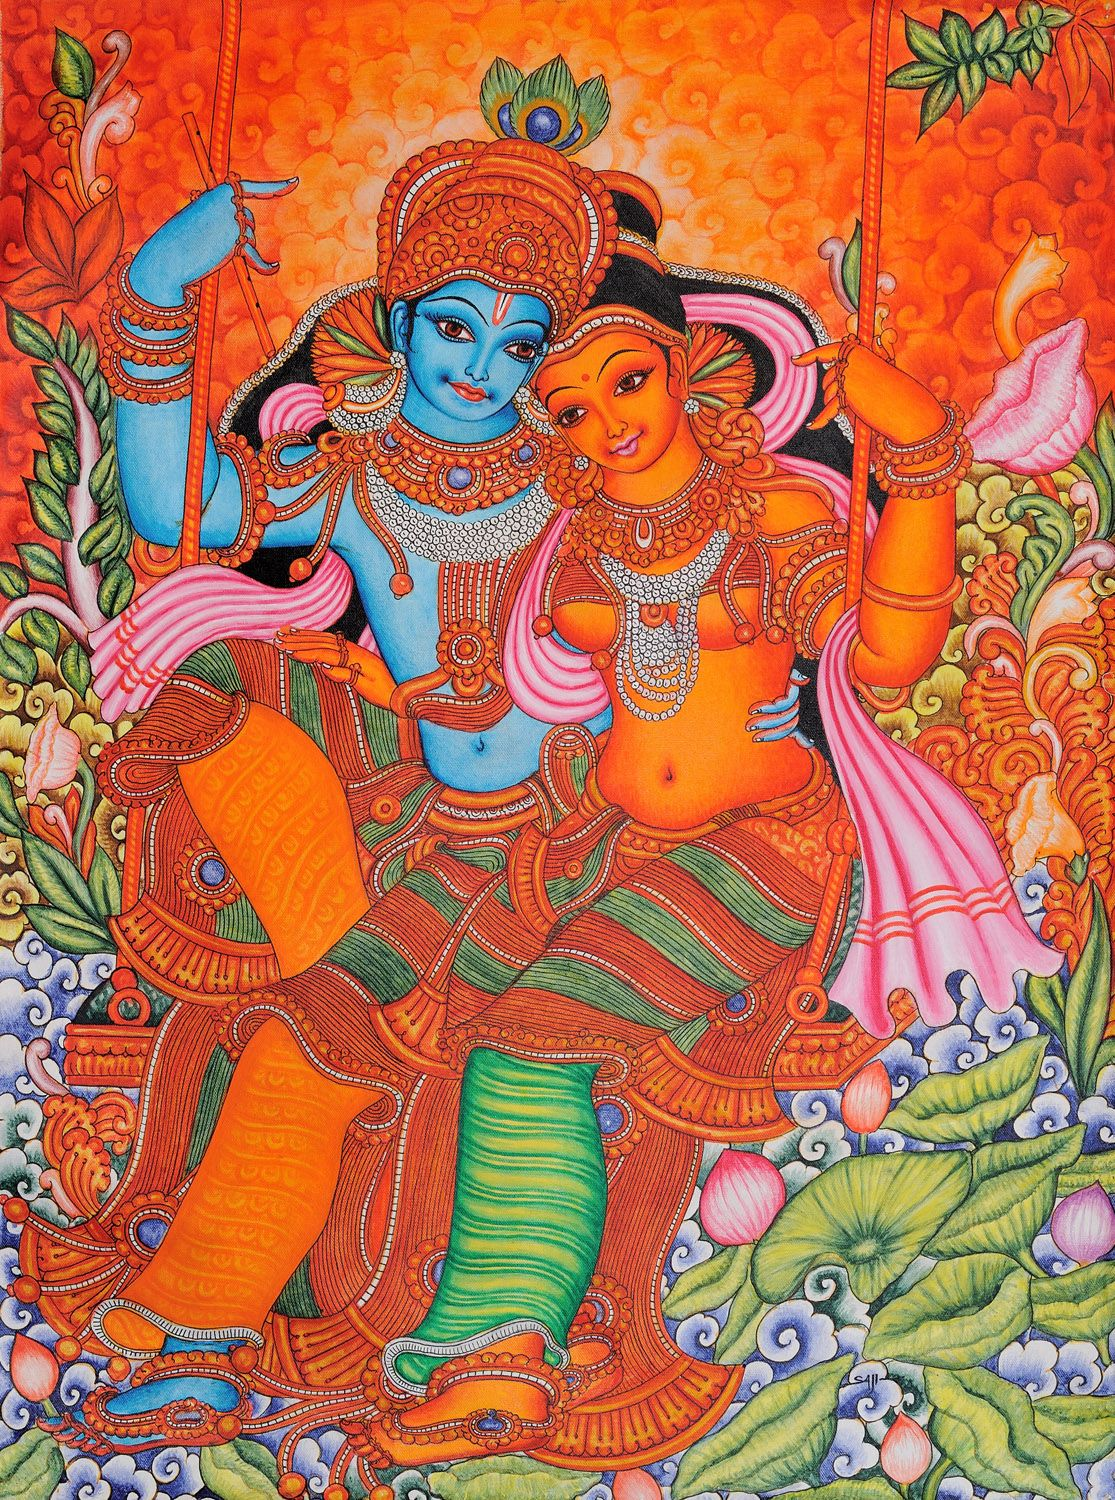 Radha and krishna on swing kerala folk style painting for Art mural painting